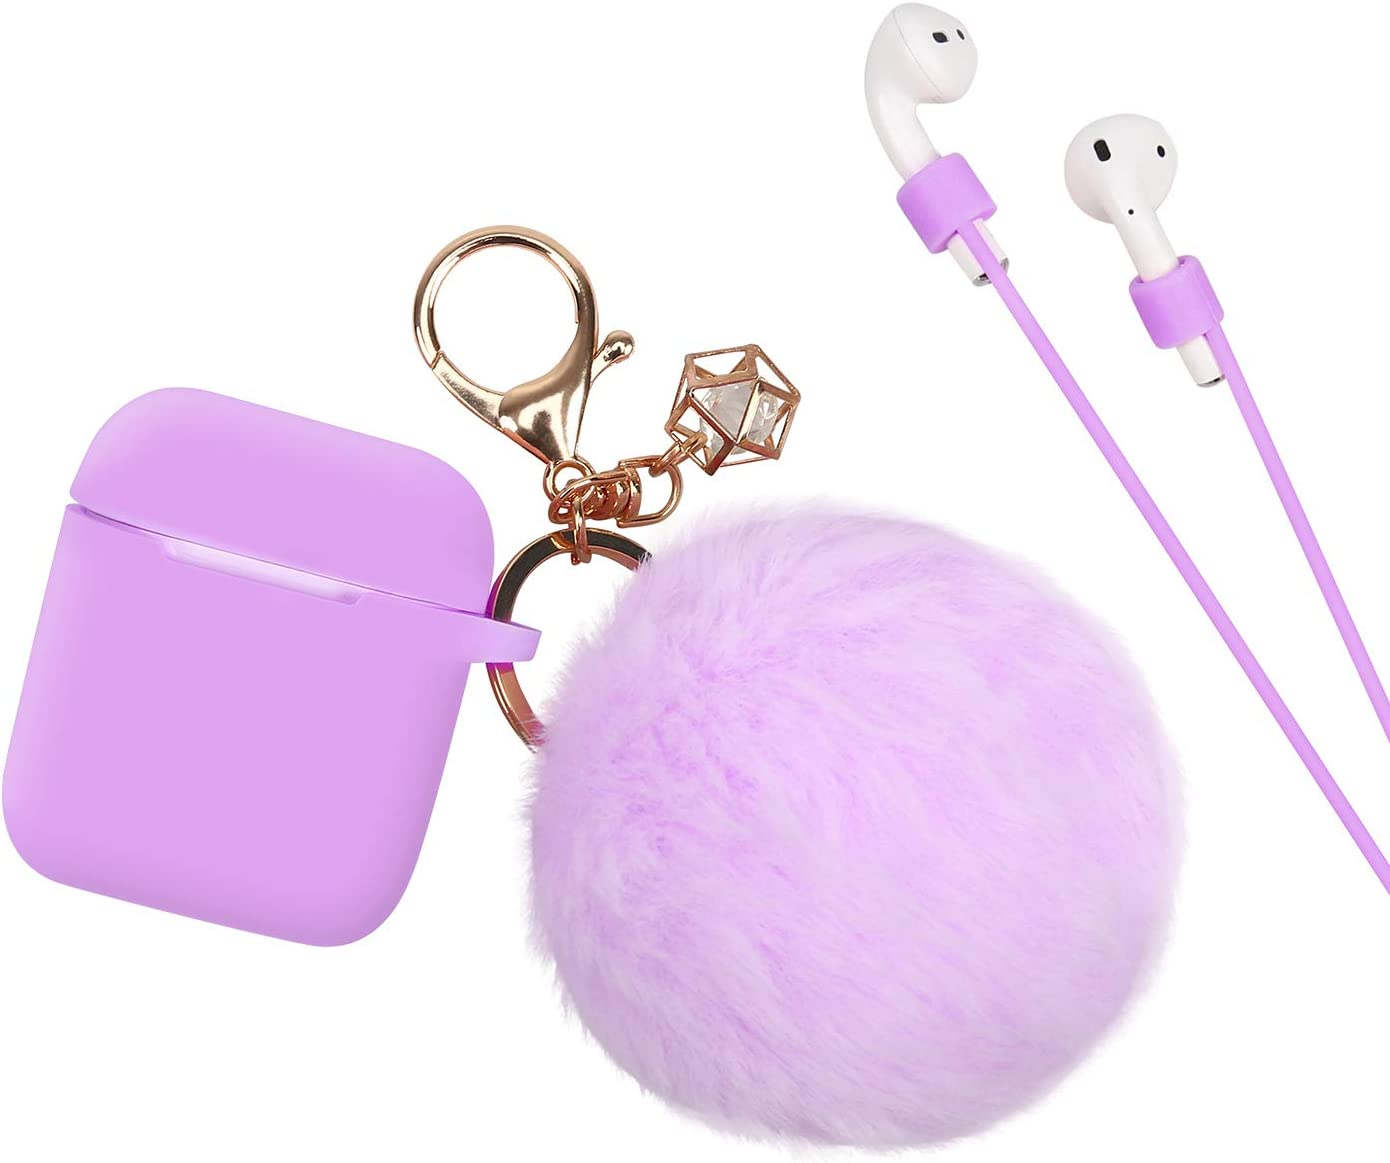 HDE Case for AirPods Silicone Protective Cover with Puffball Earbud Strap and Gold Keychain with Charm for First and Second (2019) Generation AirPods